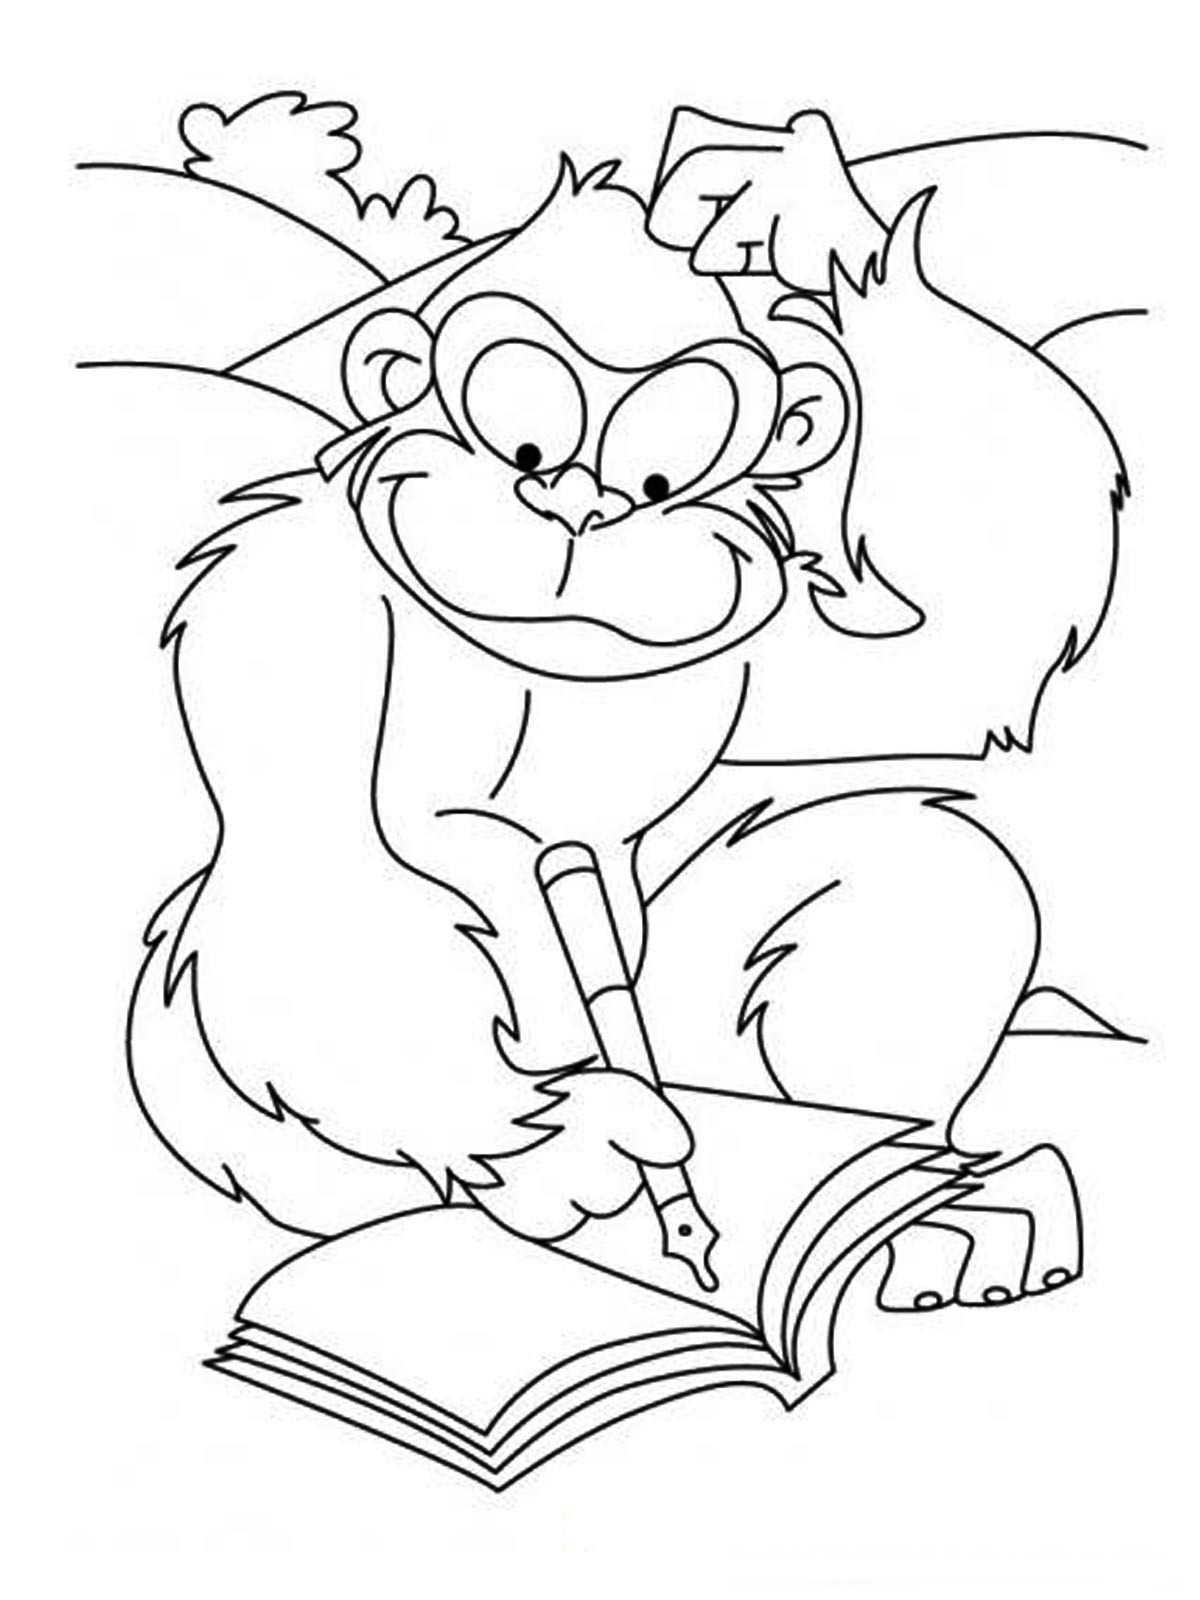 apes coloring pages realistic realistic coloring pages. Black Bedroom Furniture Sets. Home Design Ideas